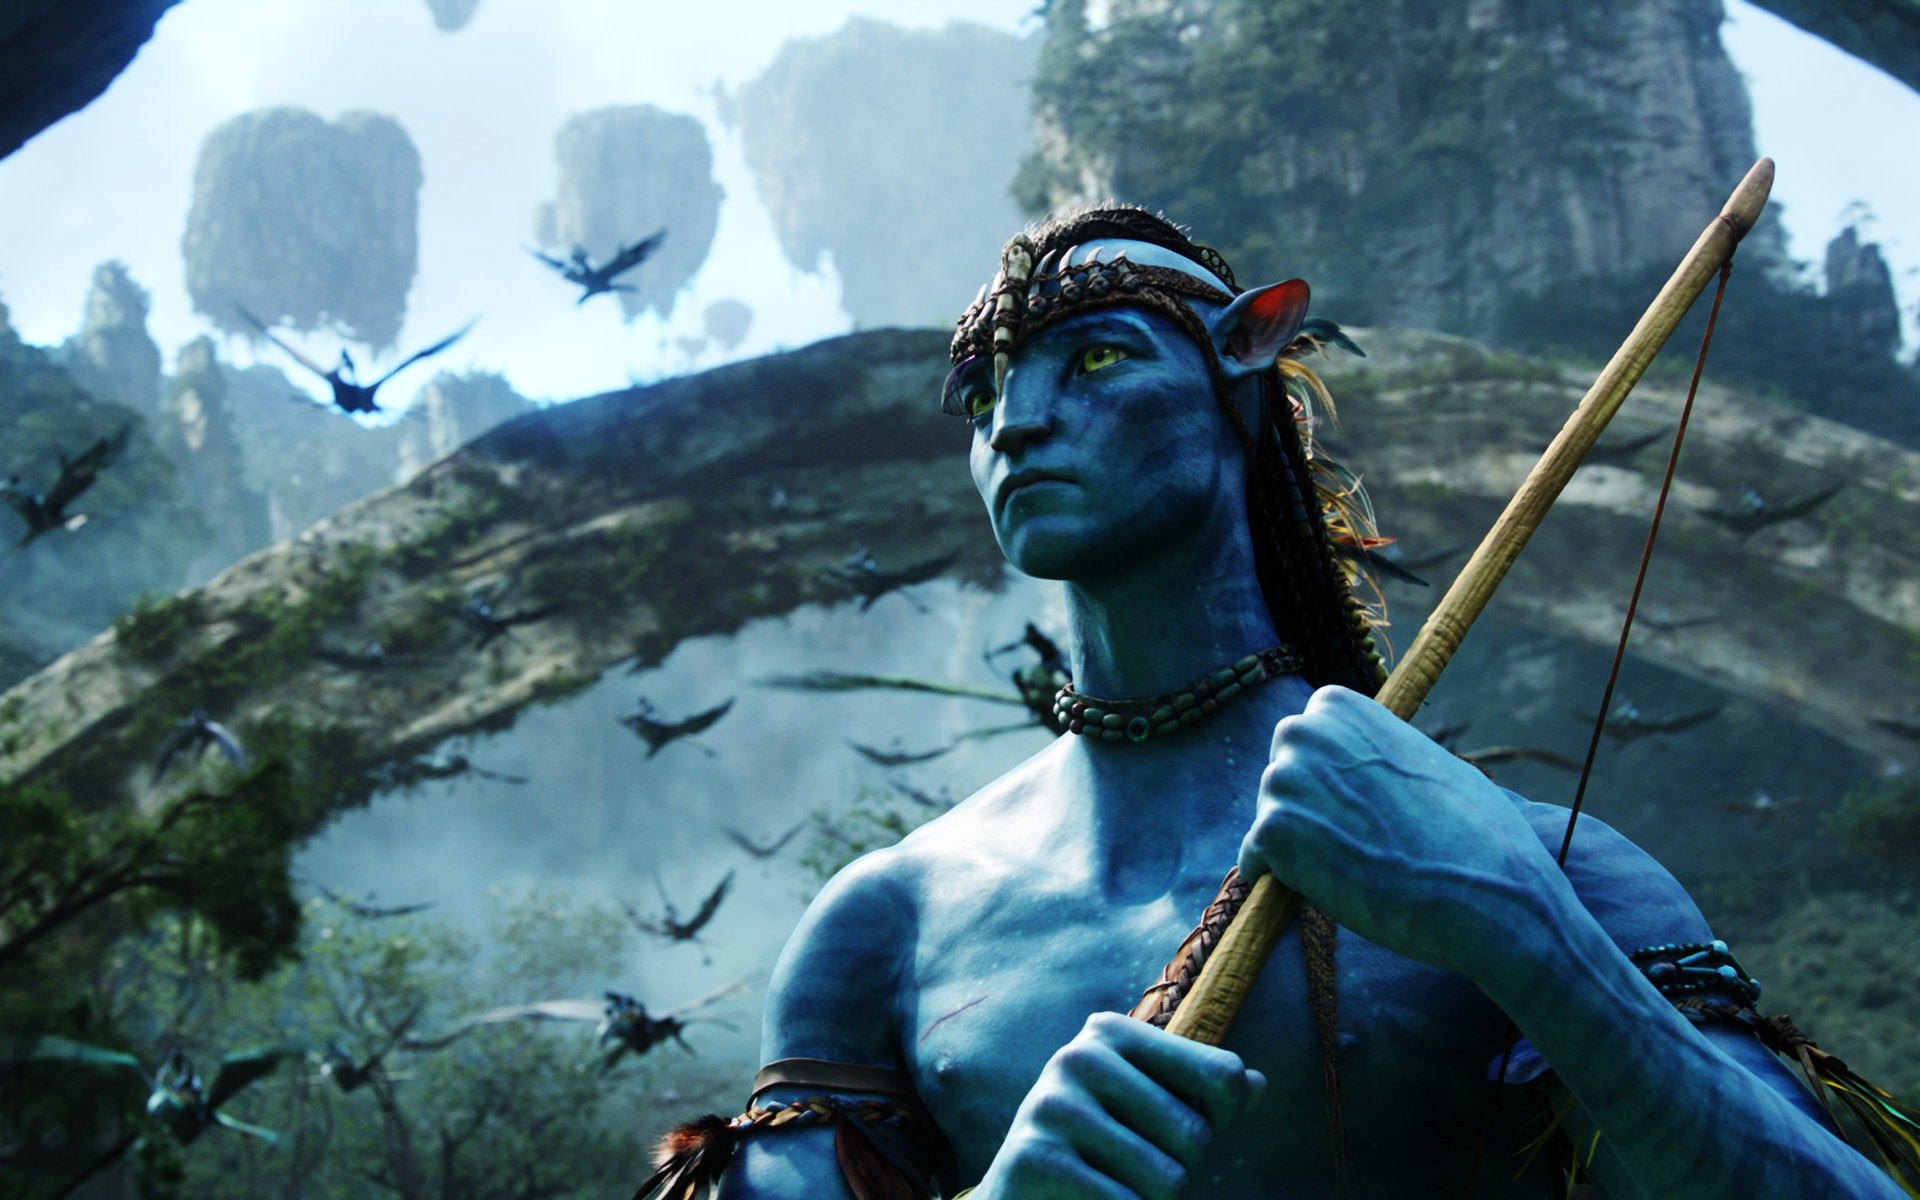 Amazing hd wallpapers of the 3d epic movie avatar